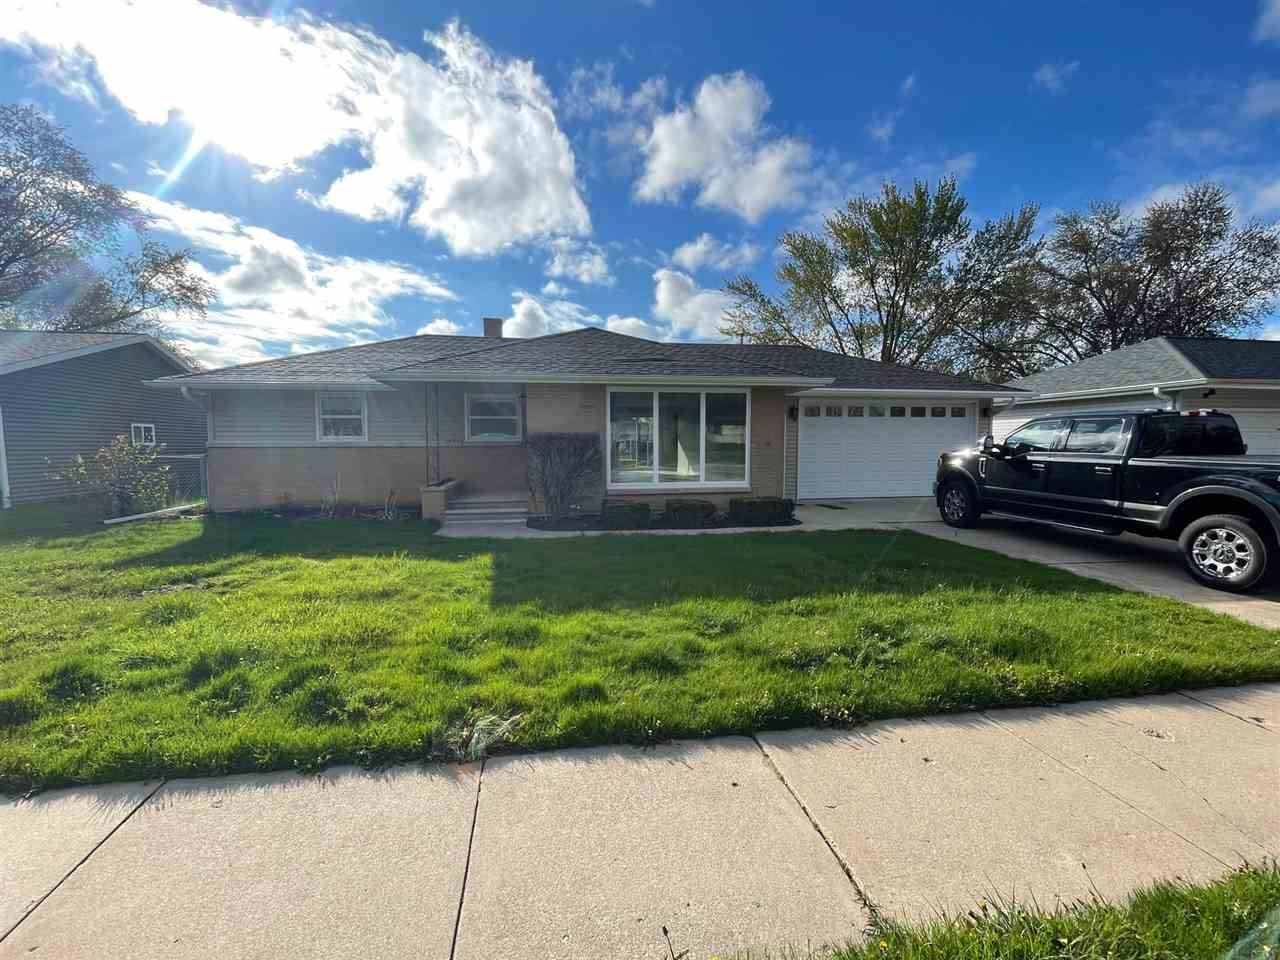 1609 S ONEIDA Street, Green Bay, WI 54304 - MLS#: 50239833